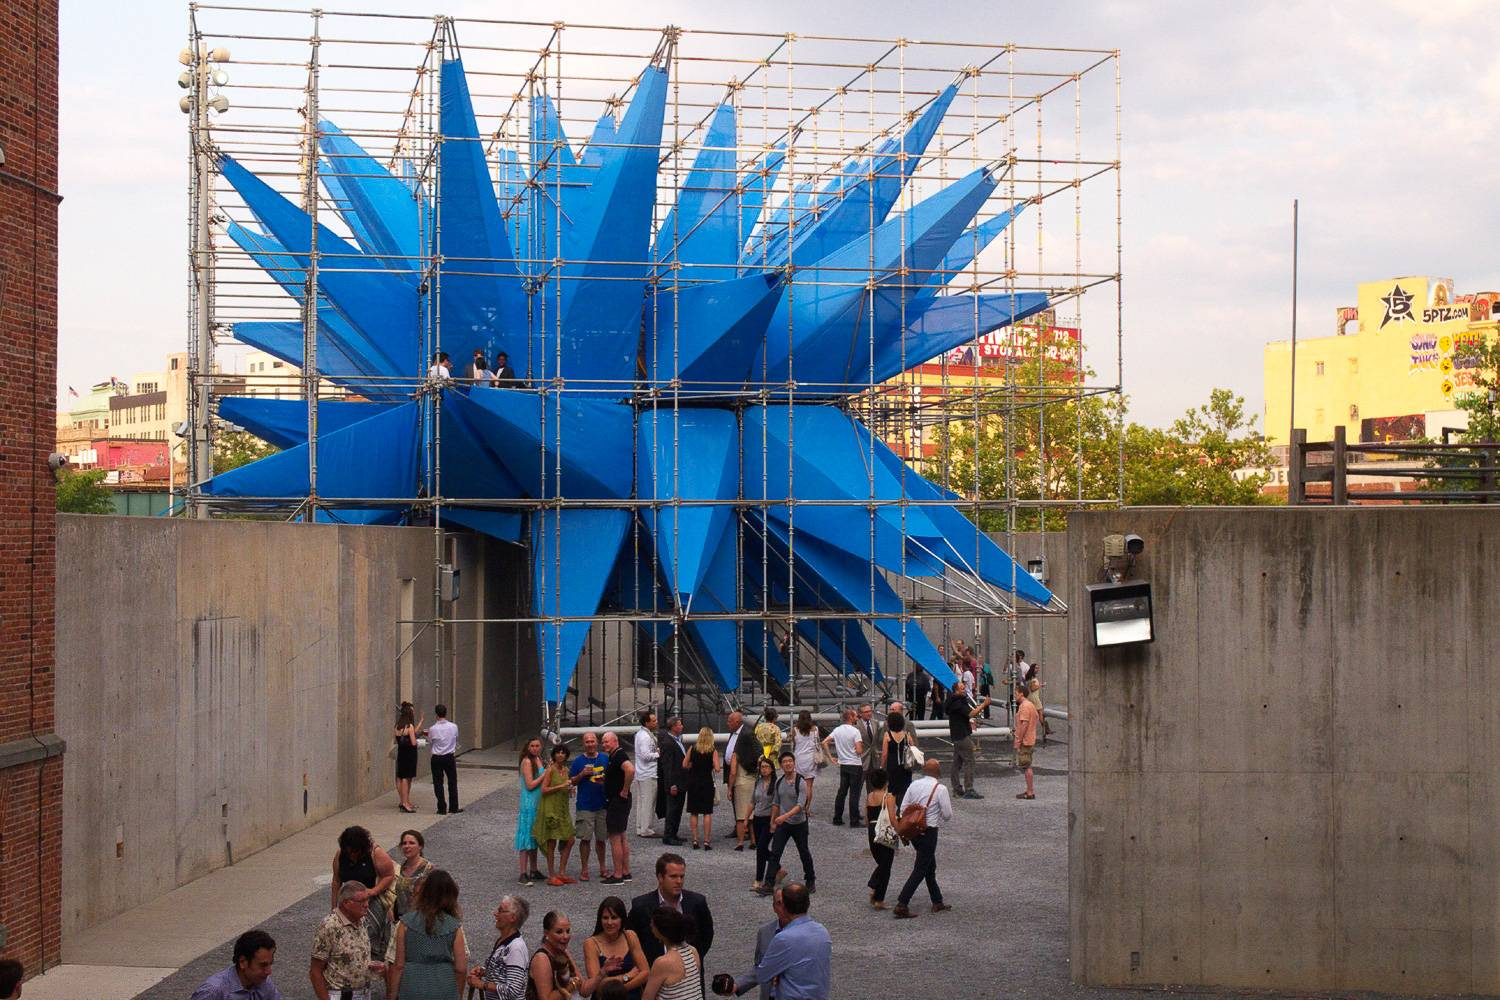 Image of rooftop of MoMA PS1 with blue sculpture.